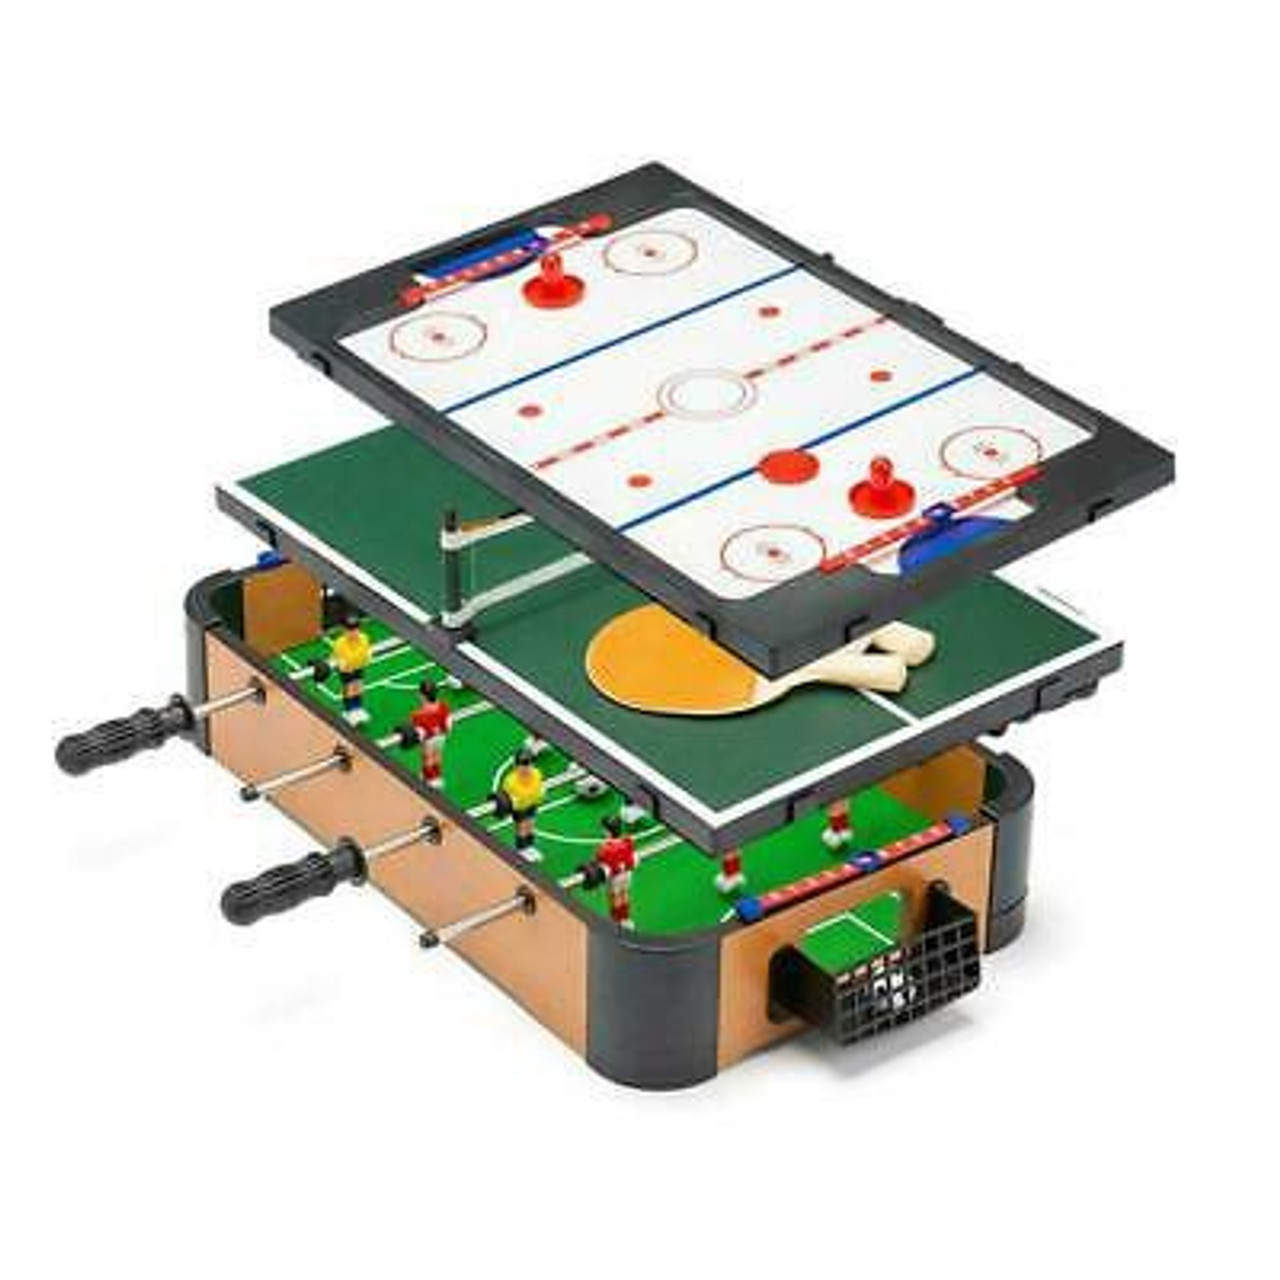 POWER PLAY 20 3 IN 1 GAME TABLE